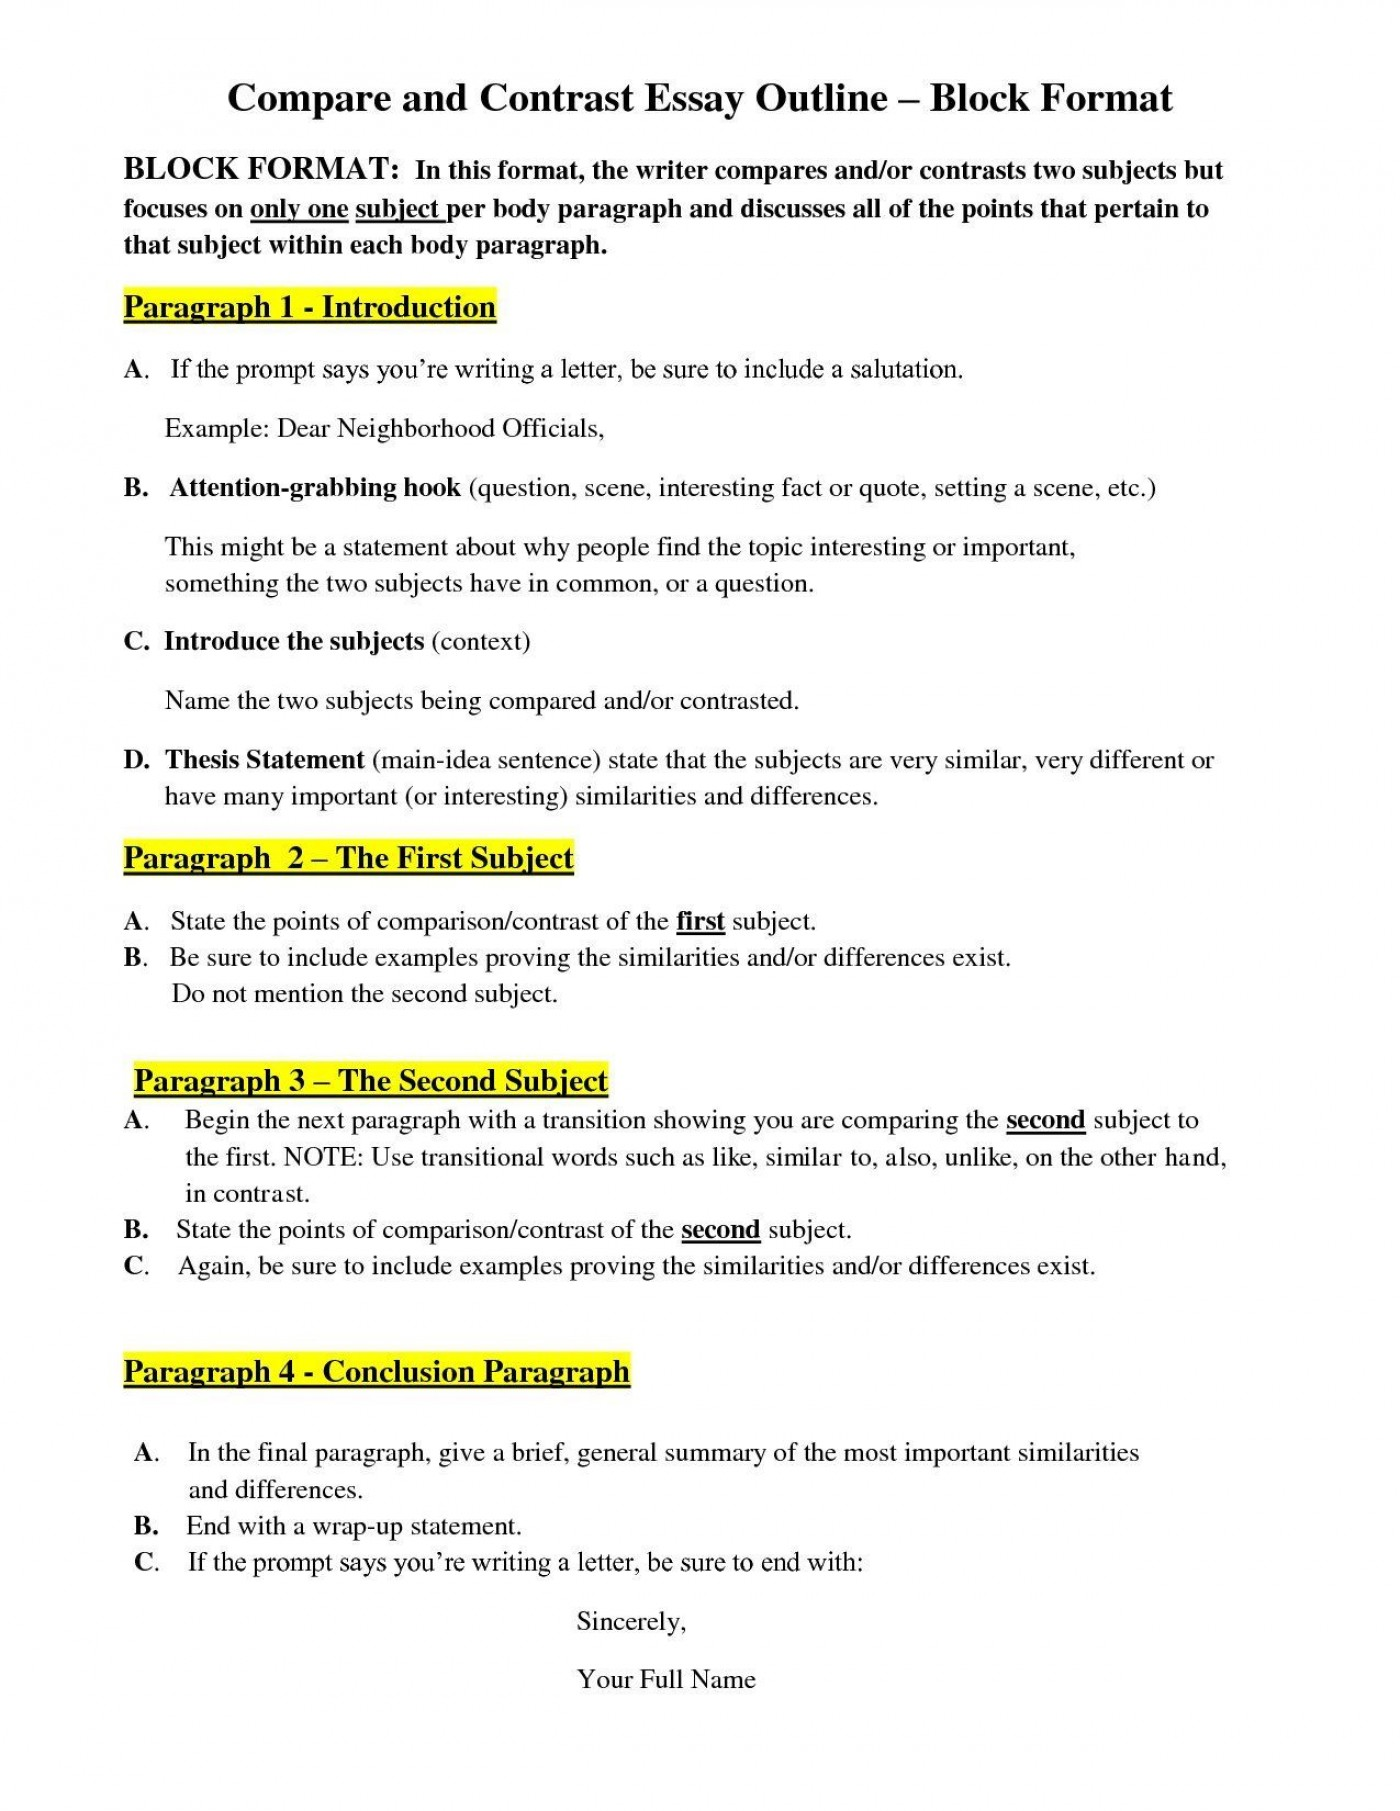 007 Compare And Contrast Essay Frightening Outline Block Method Ideas High School Template For Middle 1400